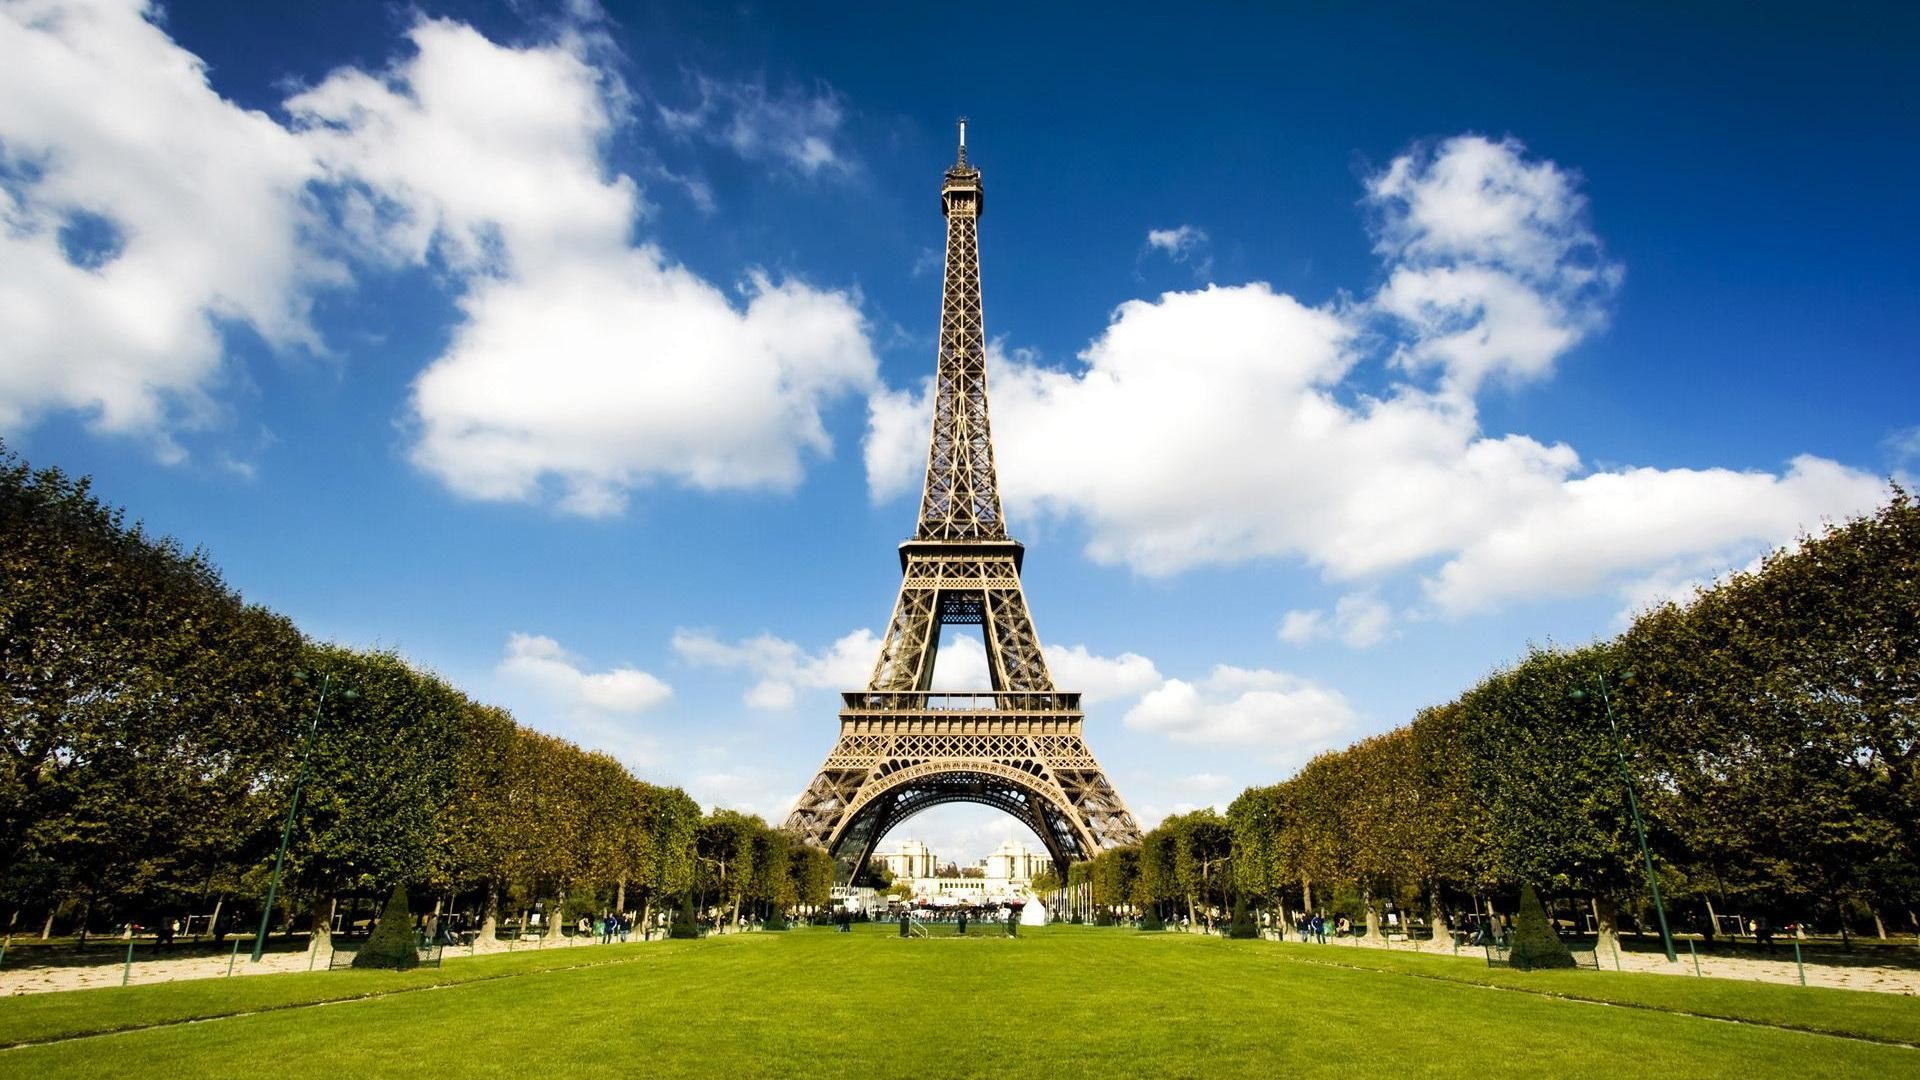 Res: 1920x1080, Paris Eiffel Tower Photography HD Wallpapers